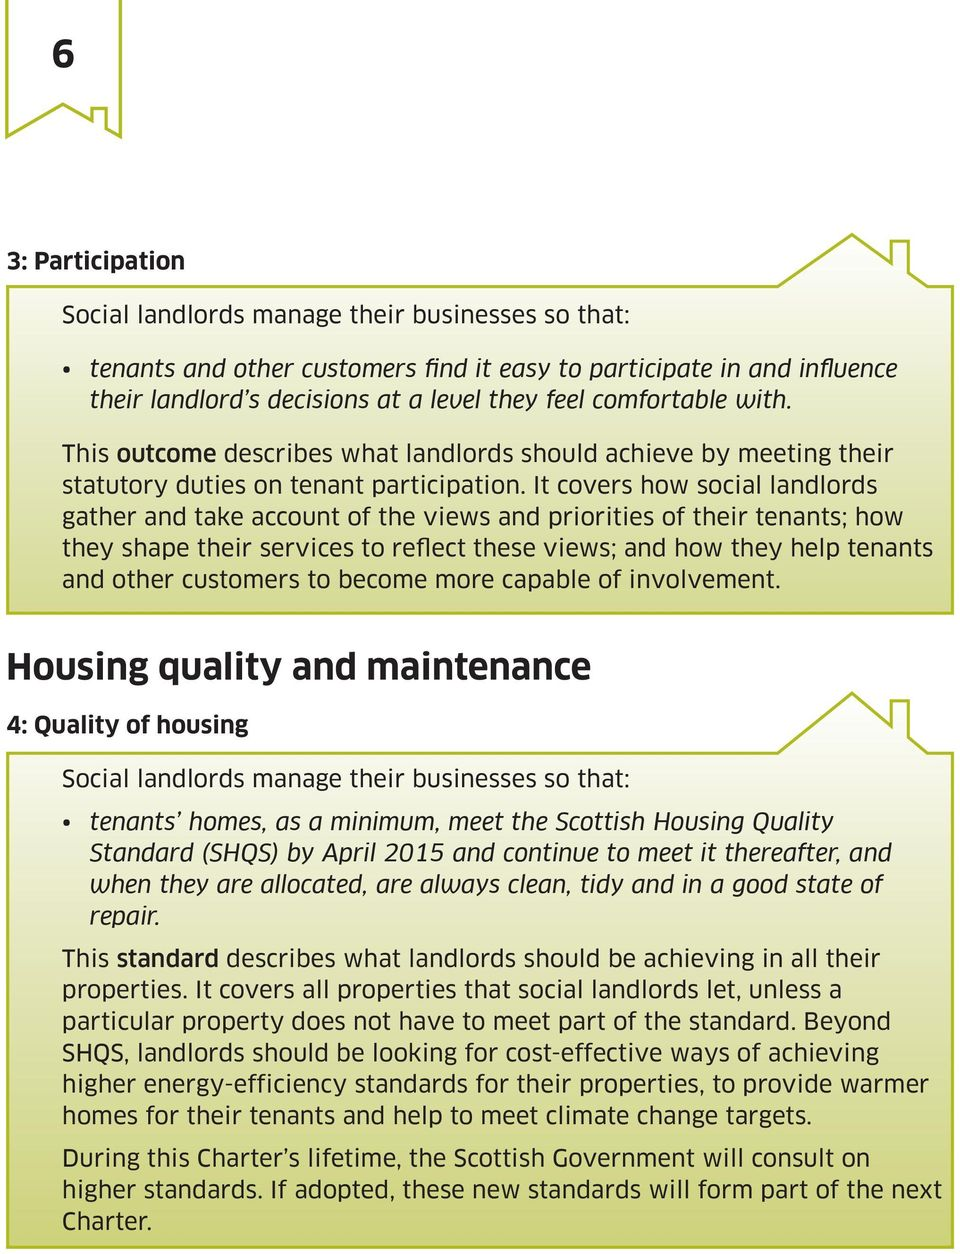 It covers how social landlords gather and take account of the views and priorities of their tenants; how they shape their services to reflect these views; and how they help tenants and other